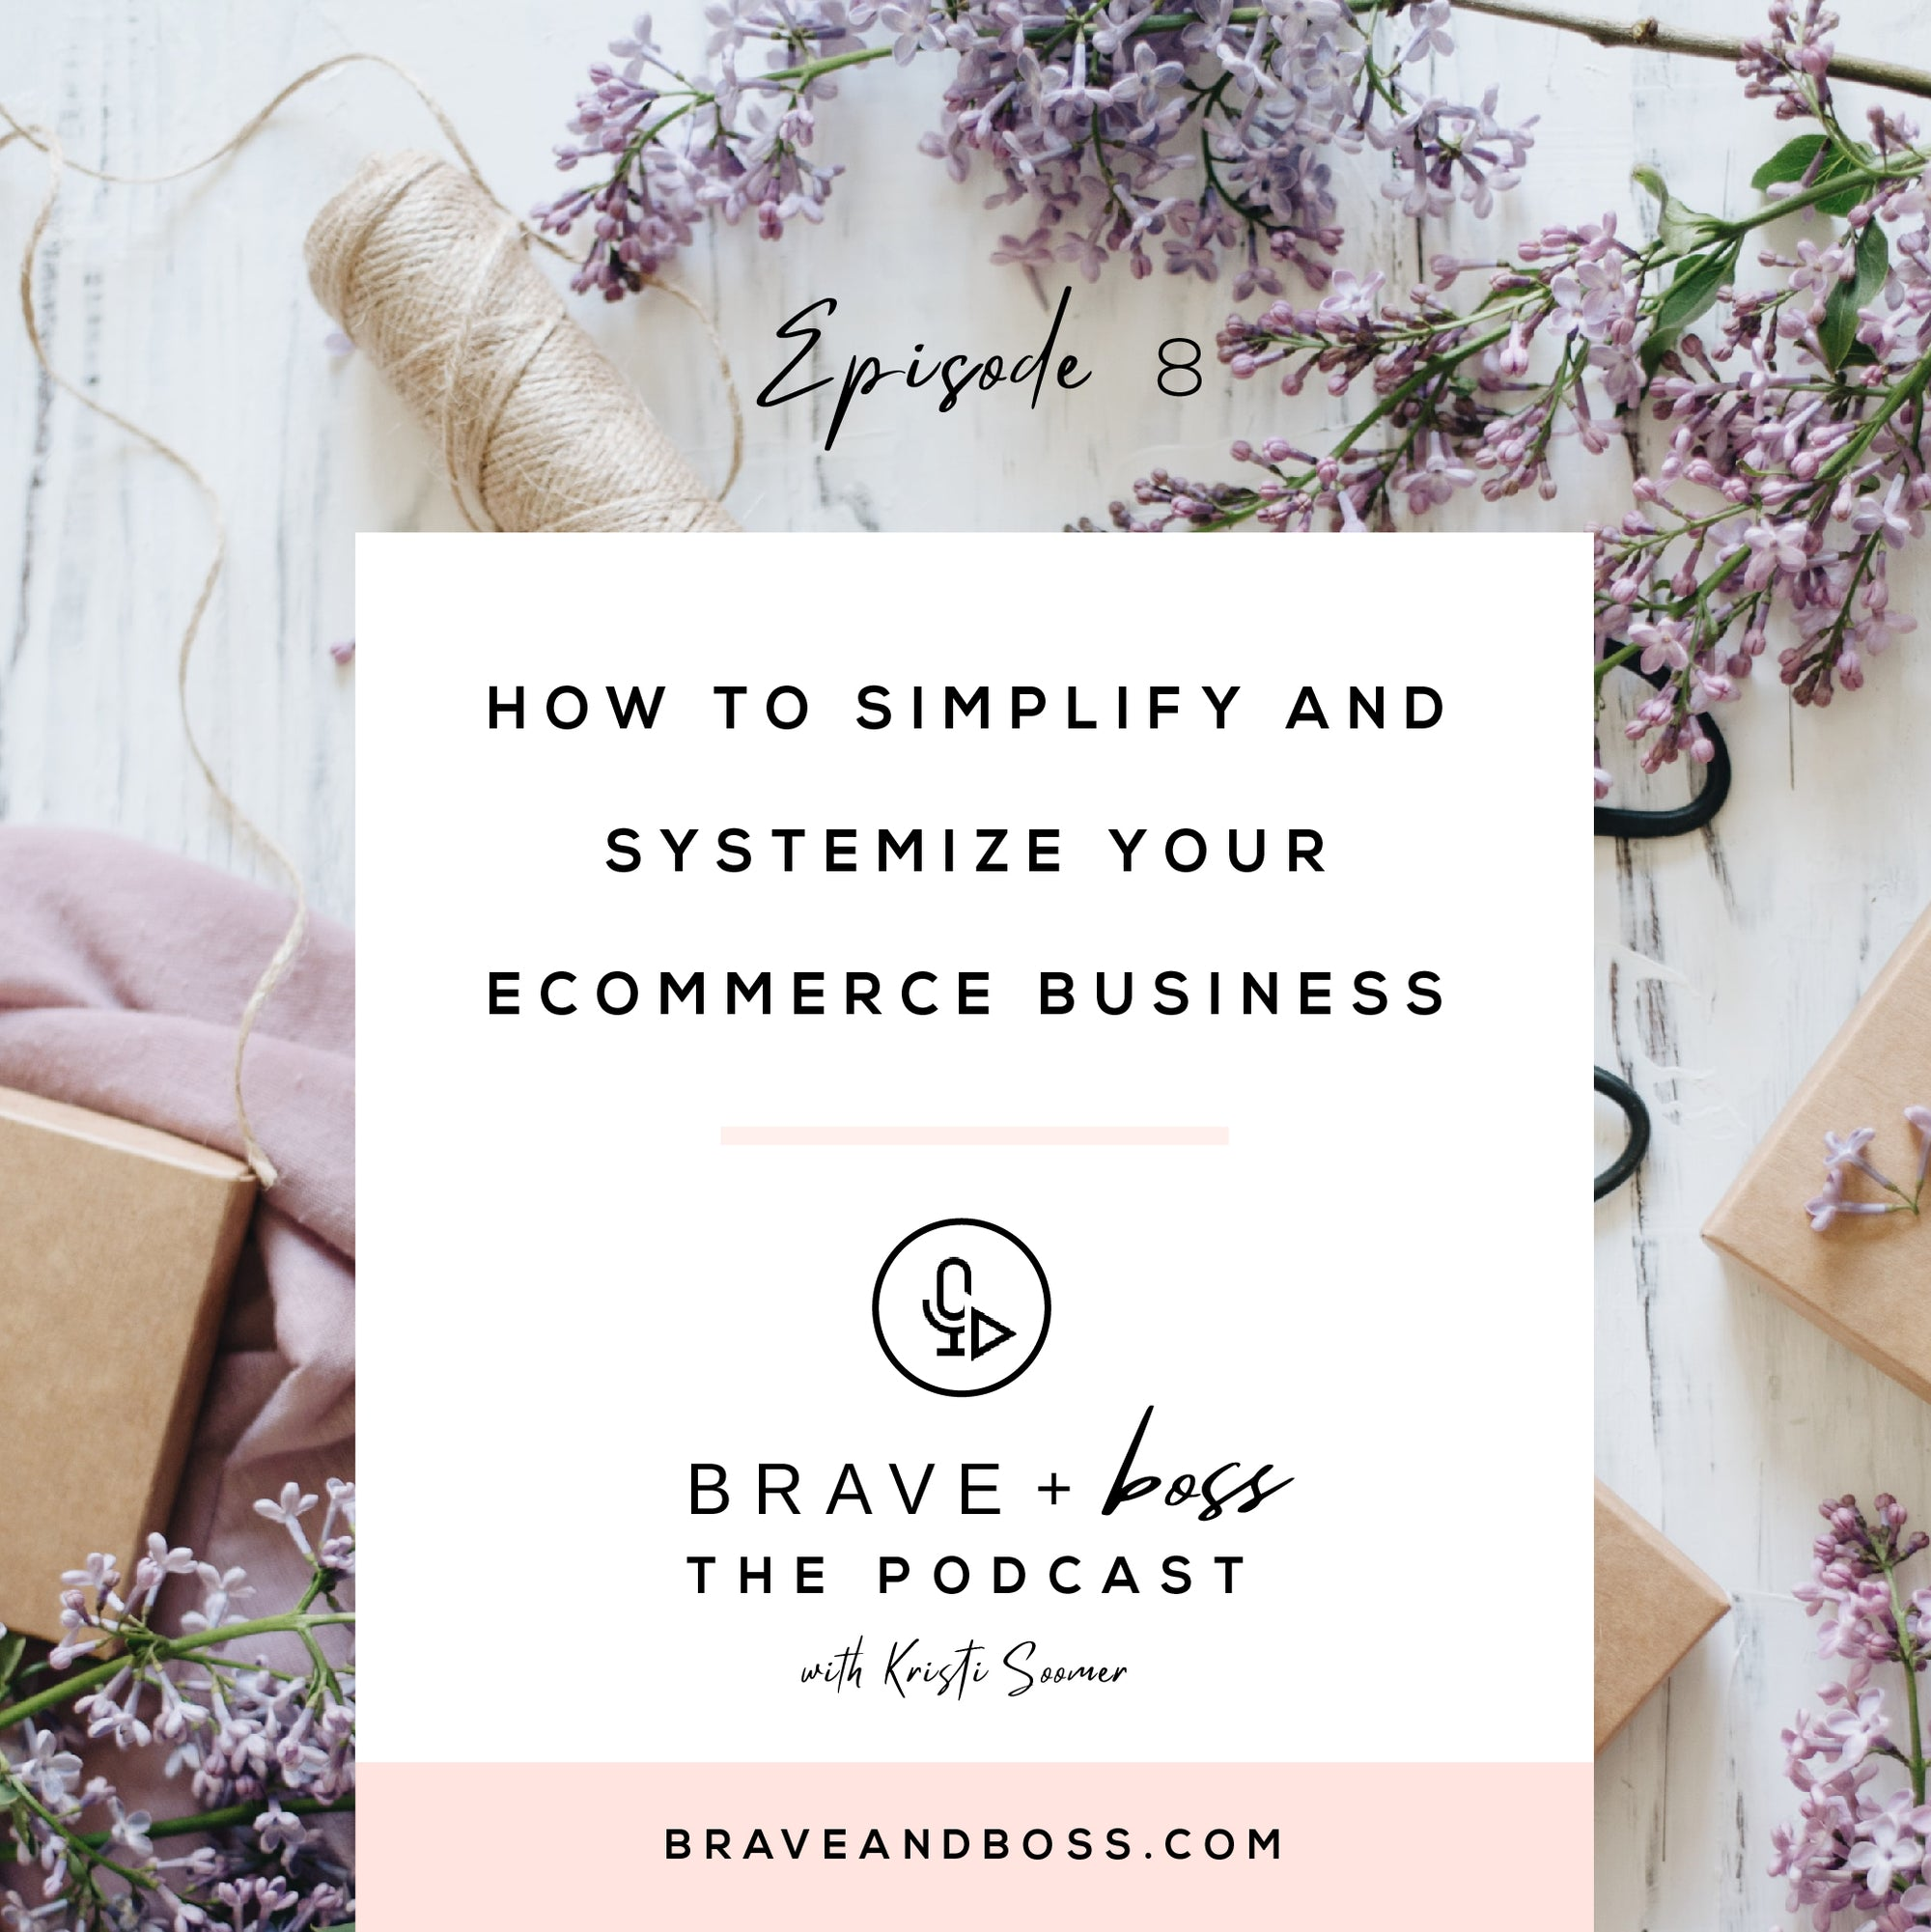 How to Simplify and Systemize your eCommerce Business